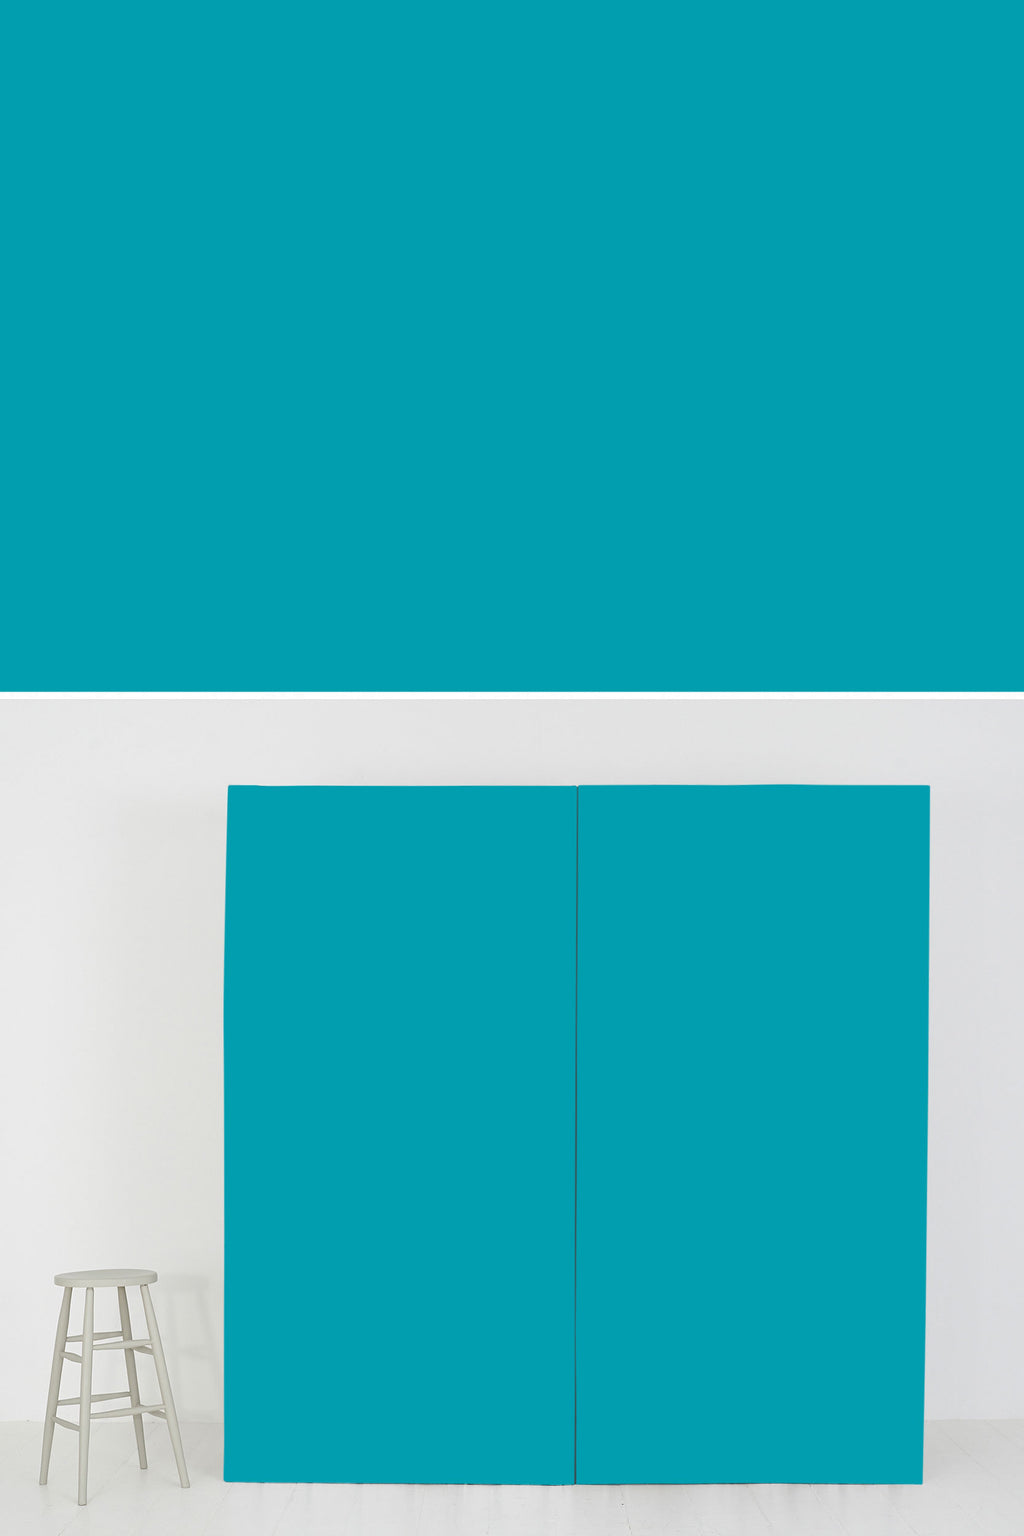 Block Colour #400 Teal - SetSurfaces